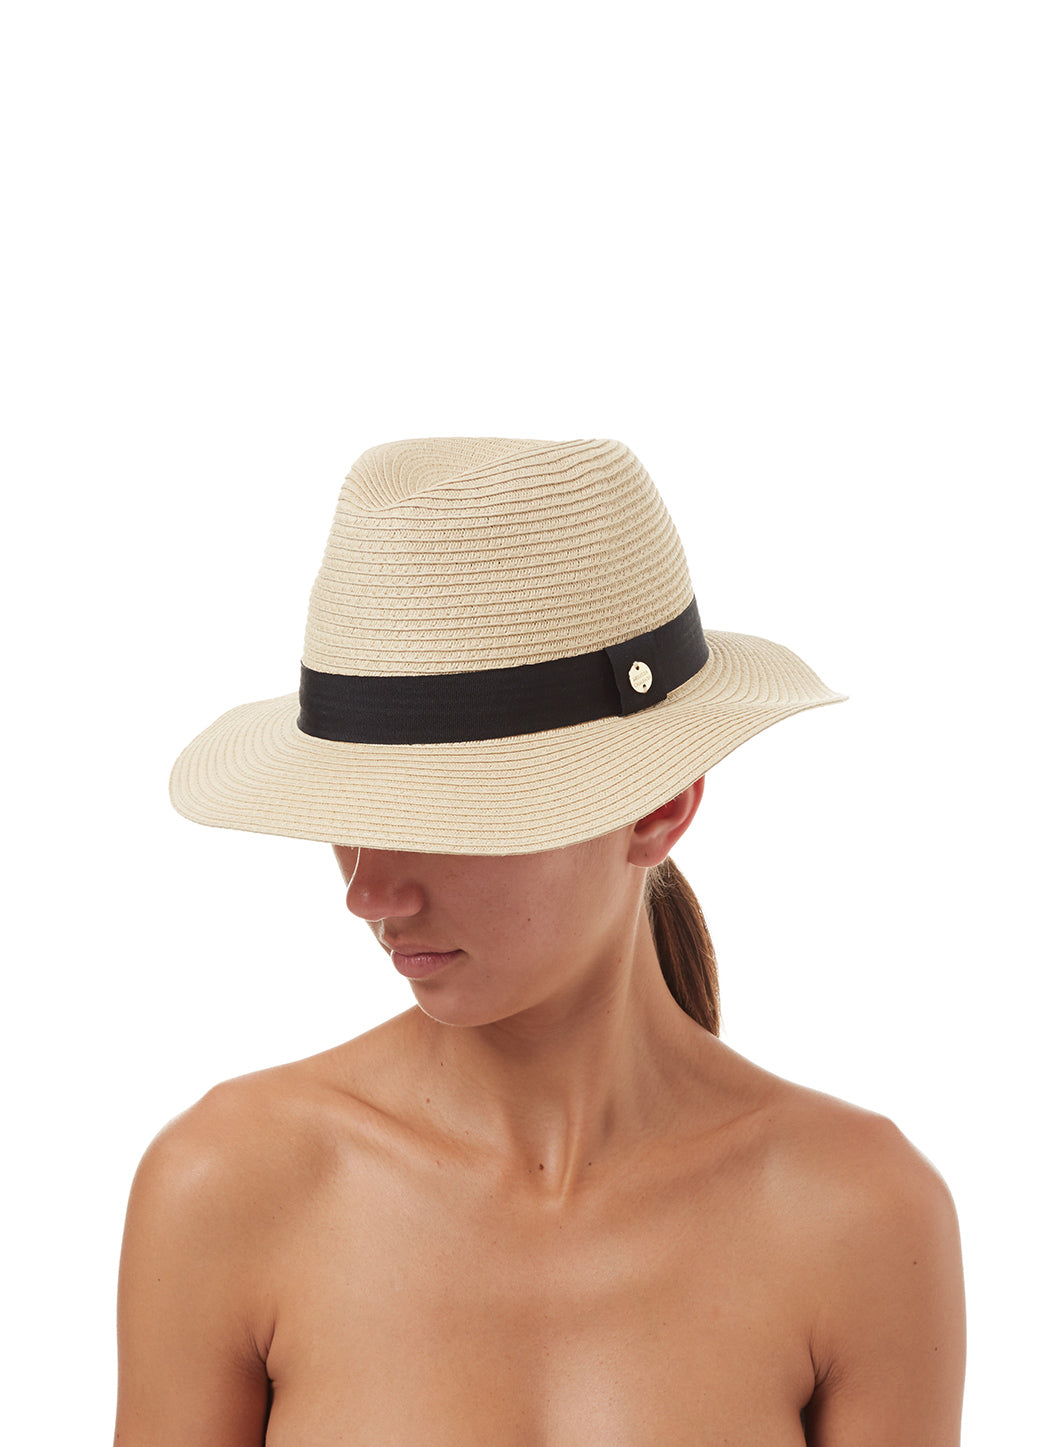 Fedora Hat Beige/Black